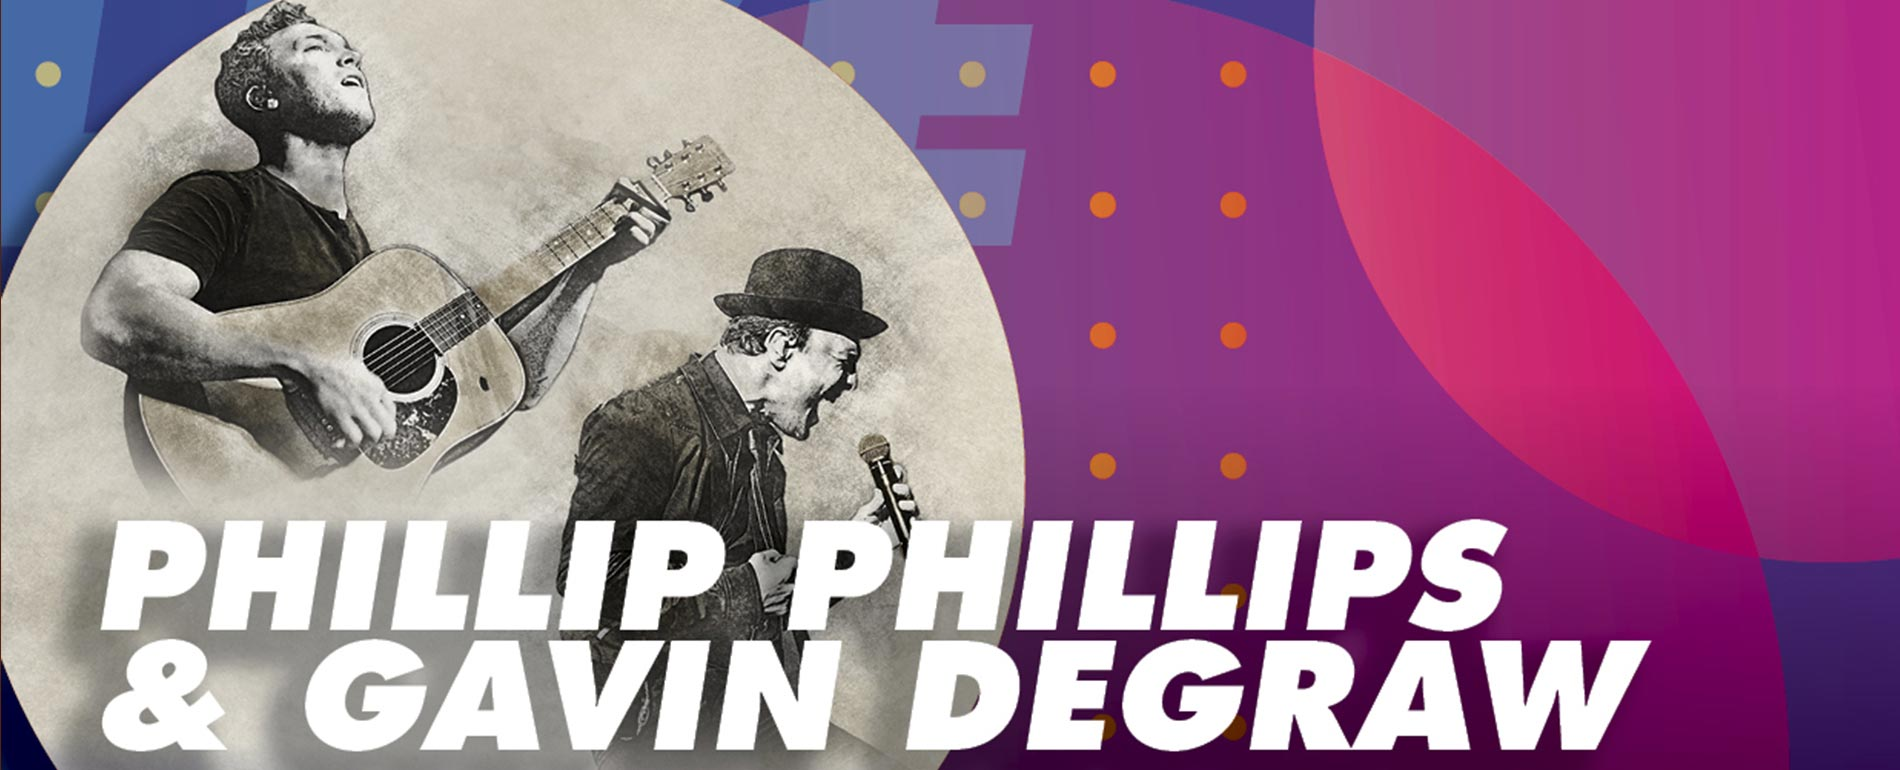 Phillip Phillips and Gavin Degraw Concert in the poconos